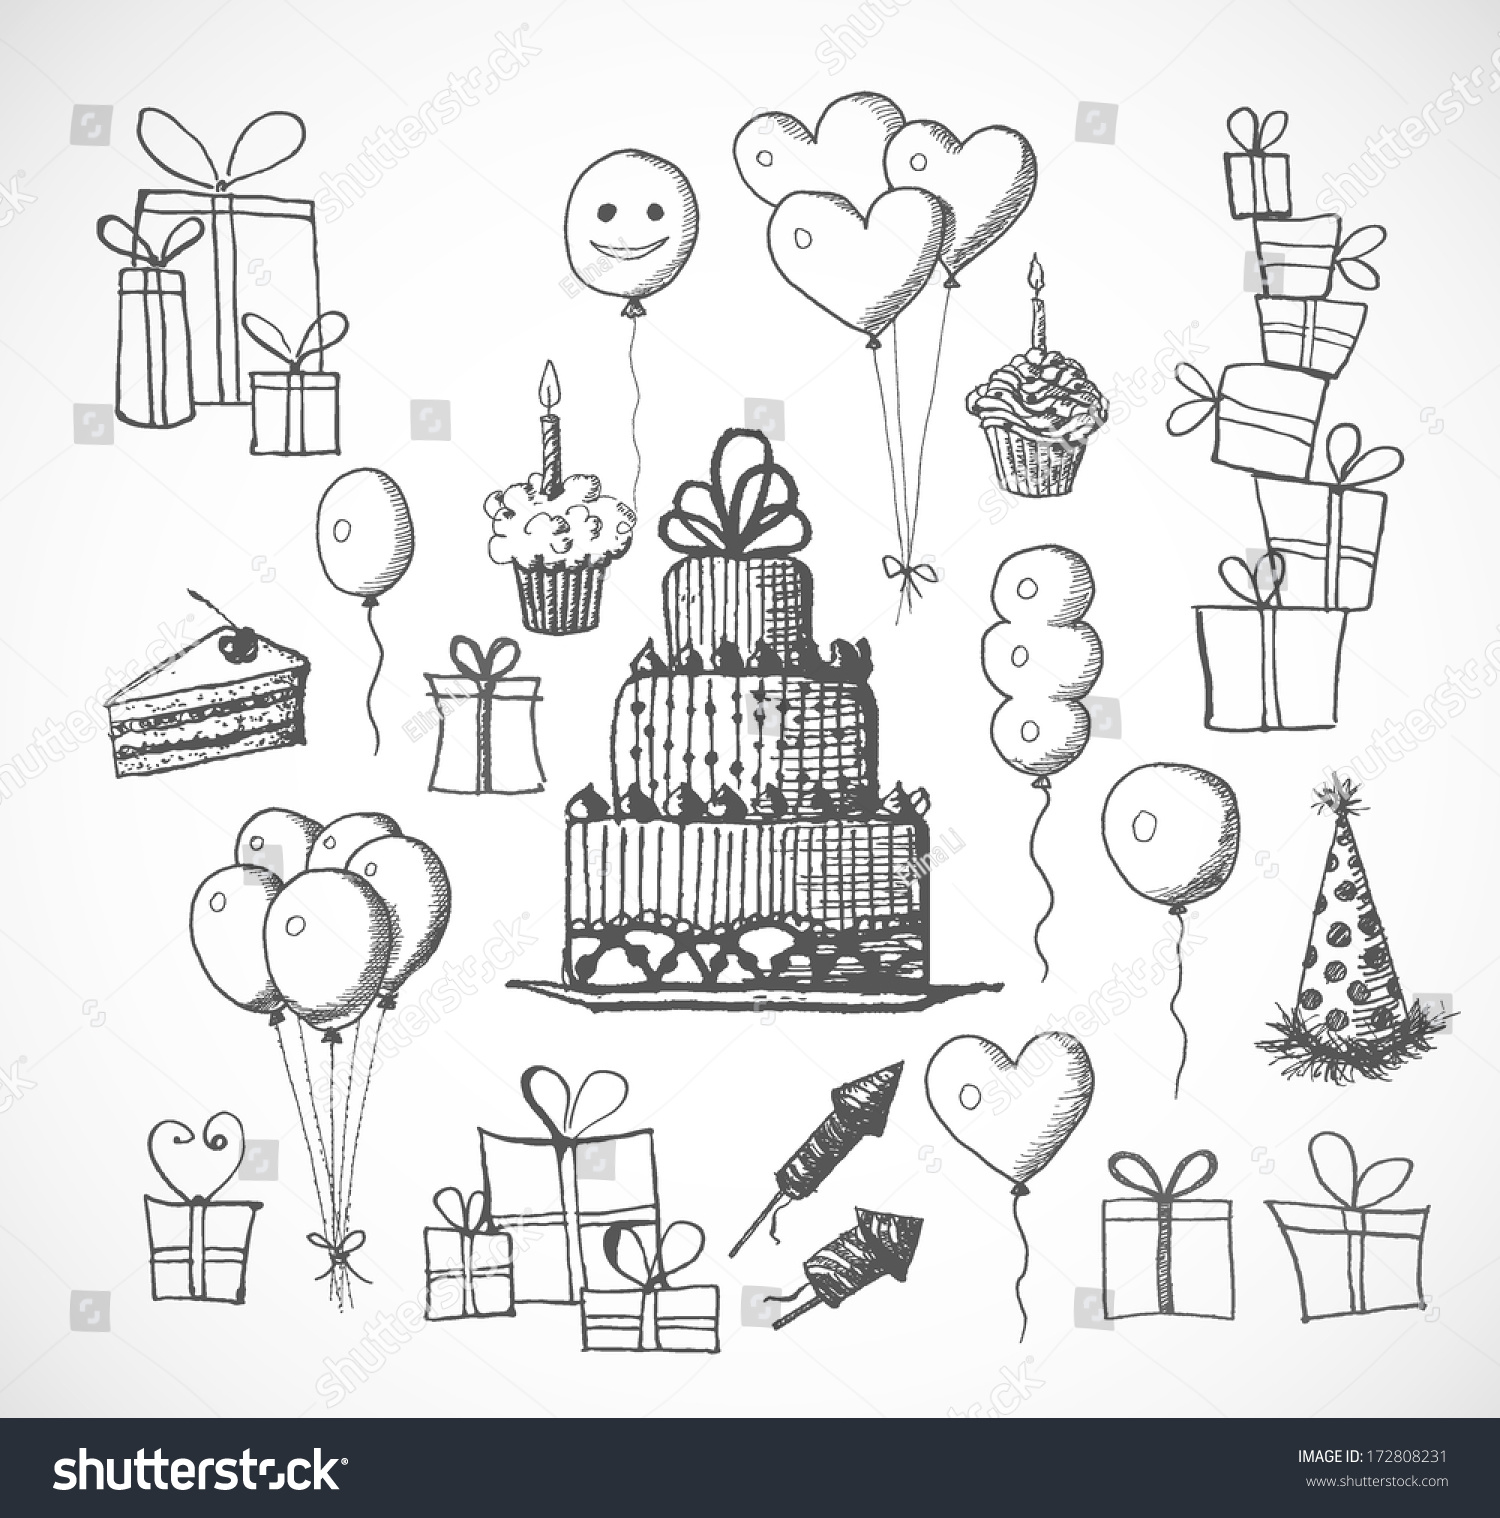 birthday sketch images ; stock-vector-set-of-birthday-sketch-objects-isolated-on-white-cakes-balloons-birthday-gifts-vector-172808231